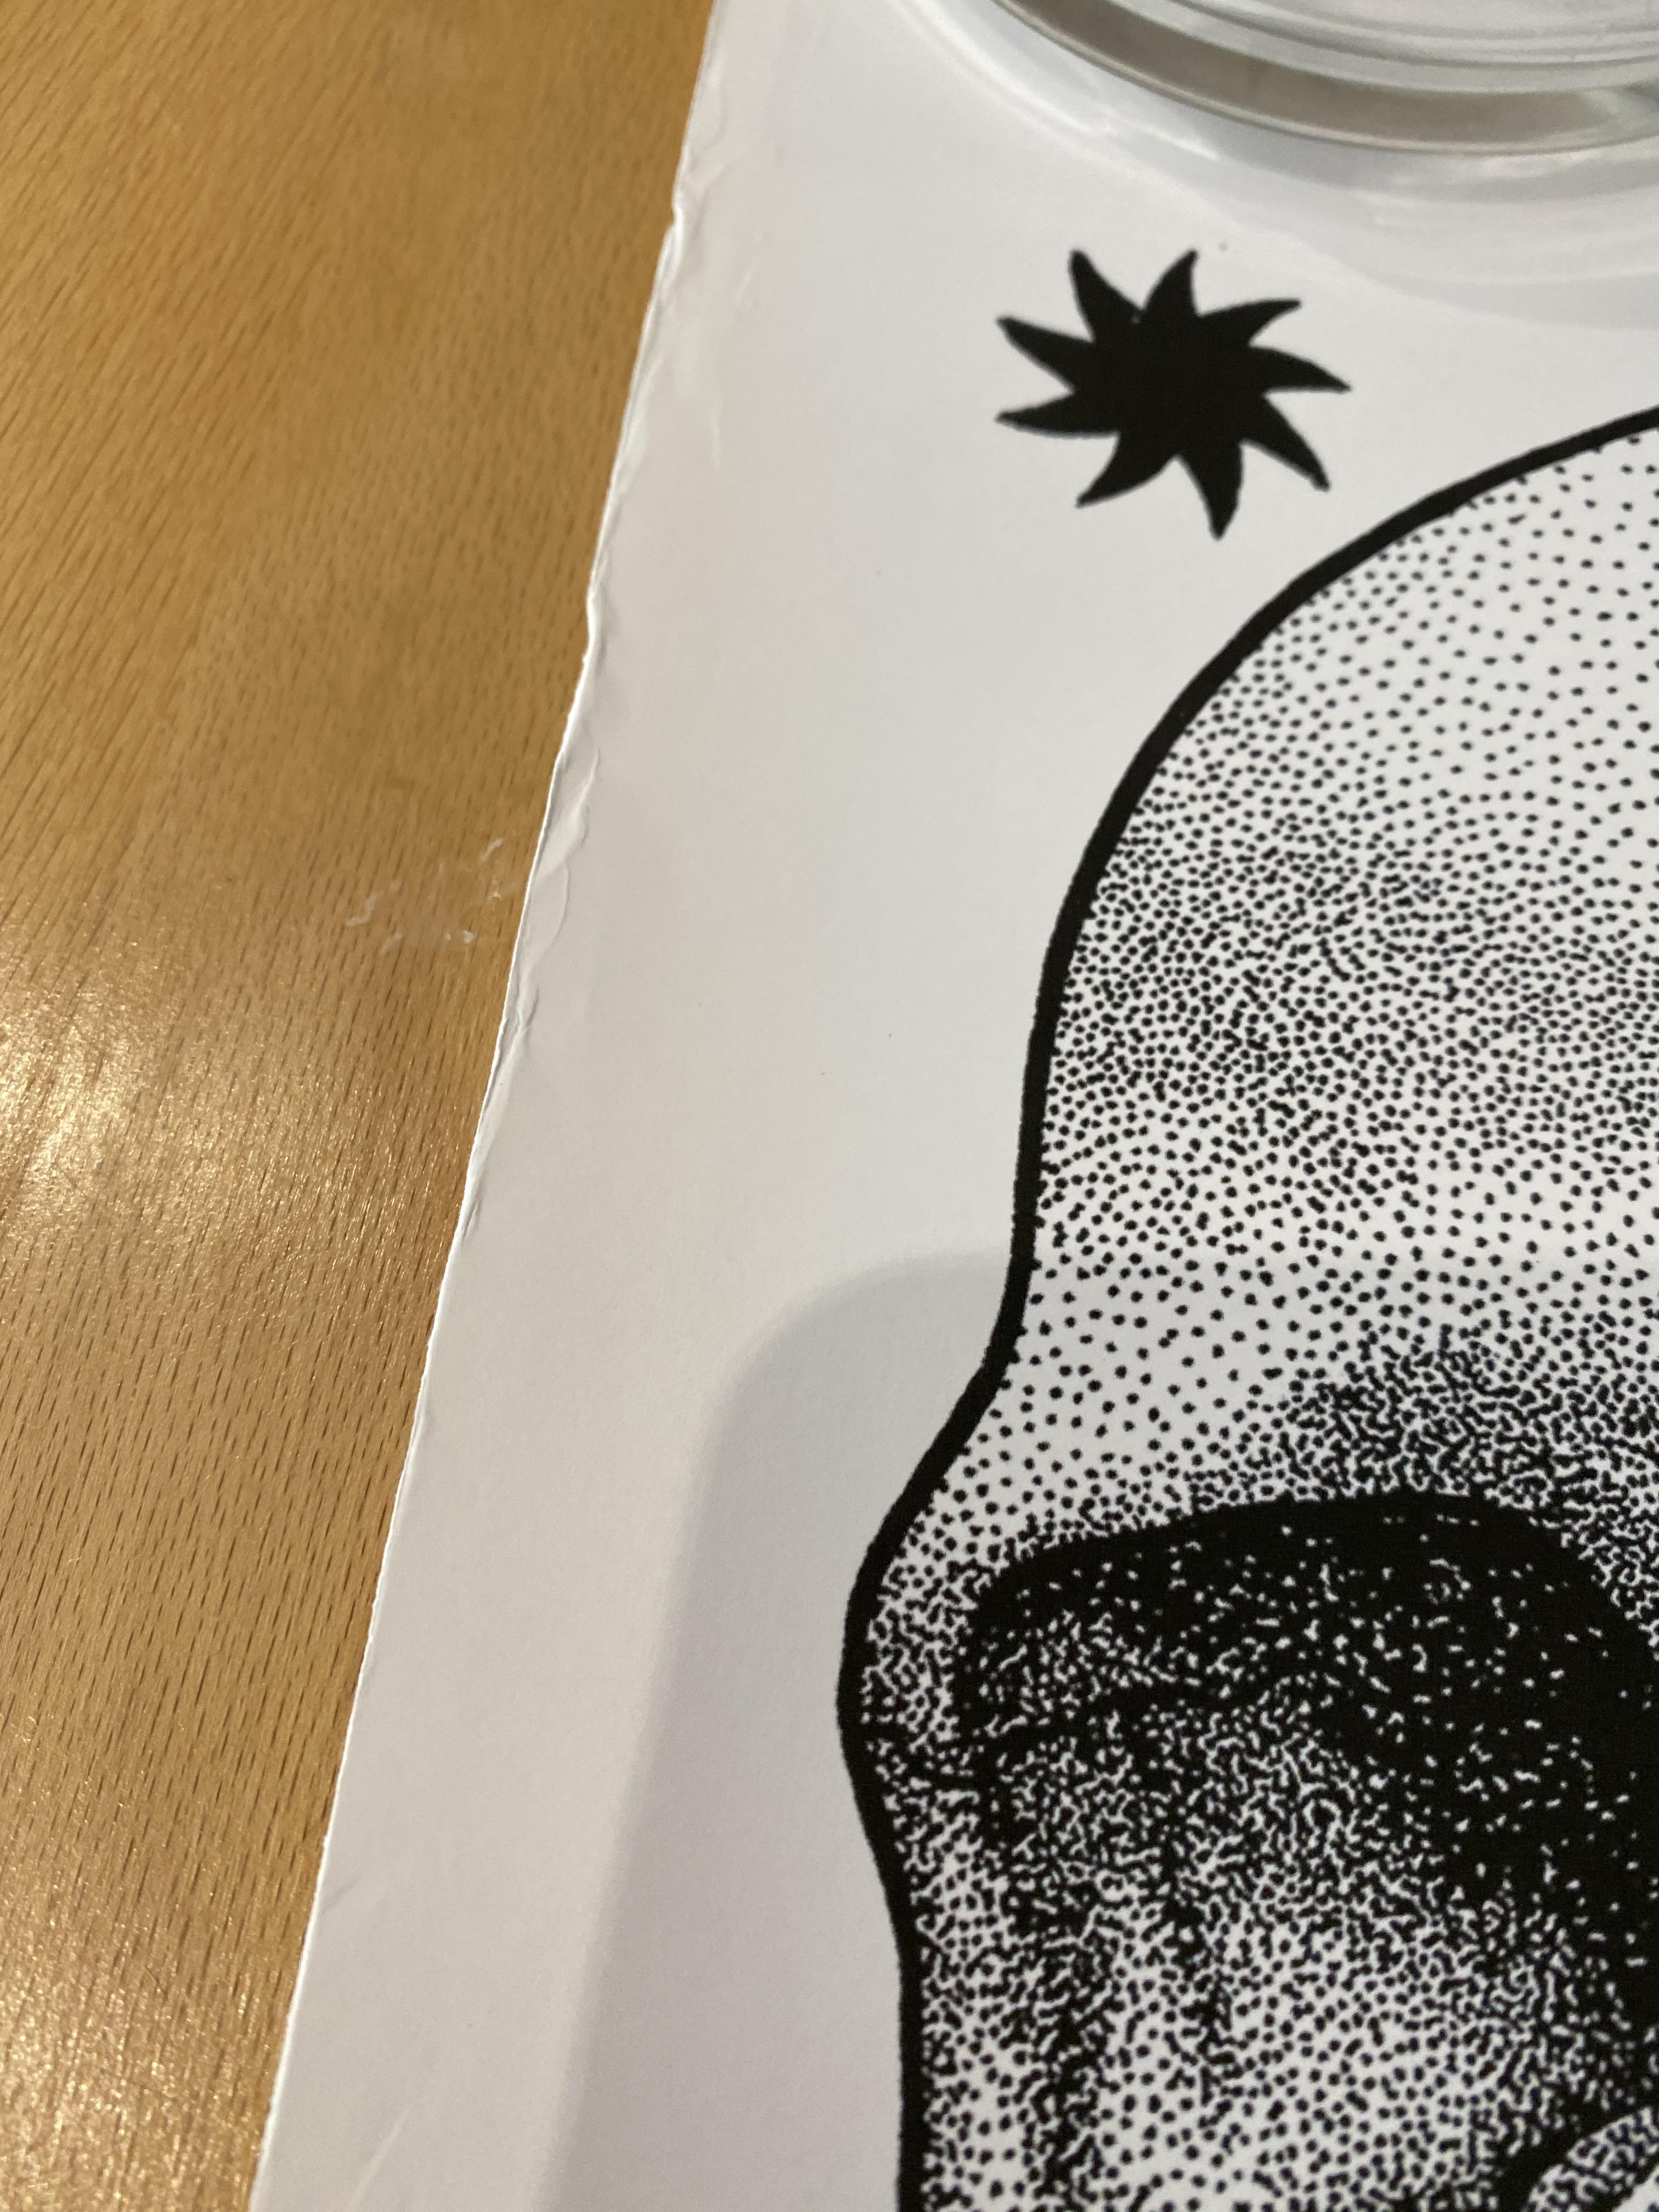 Cack Handed Kid A3 Limited Edition Print plus two posters - Image 11 of 11